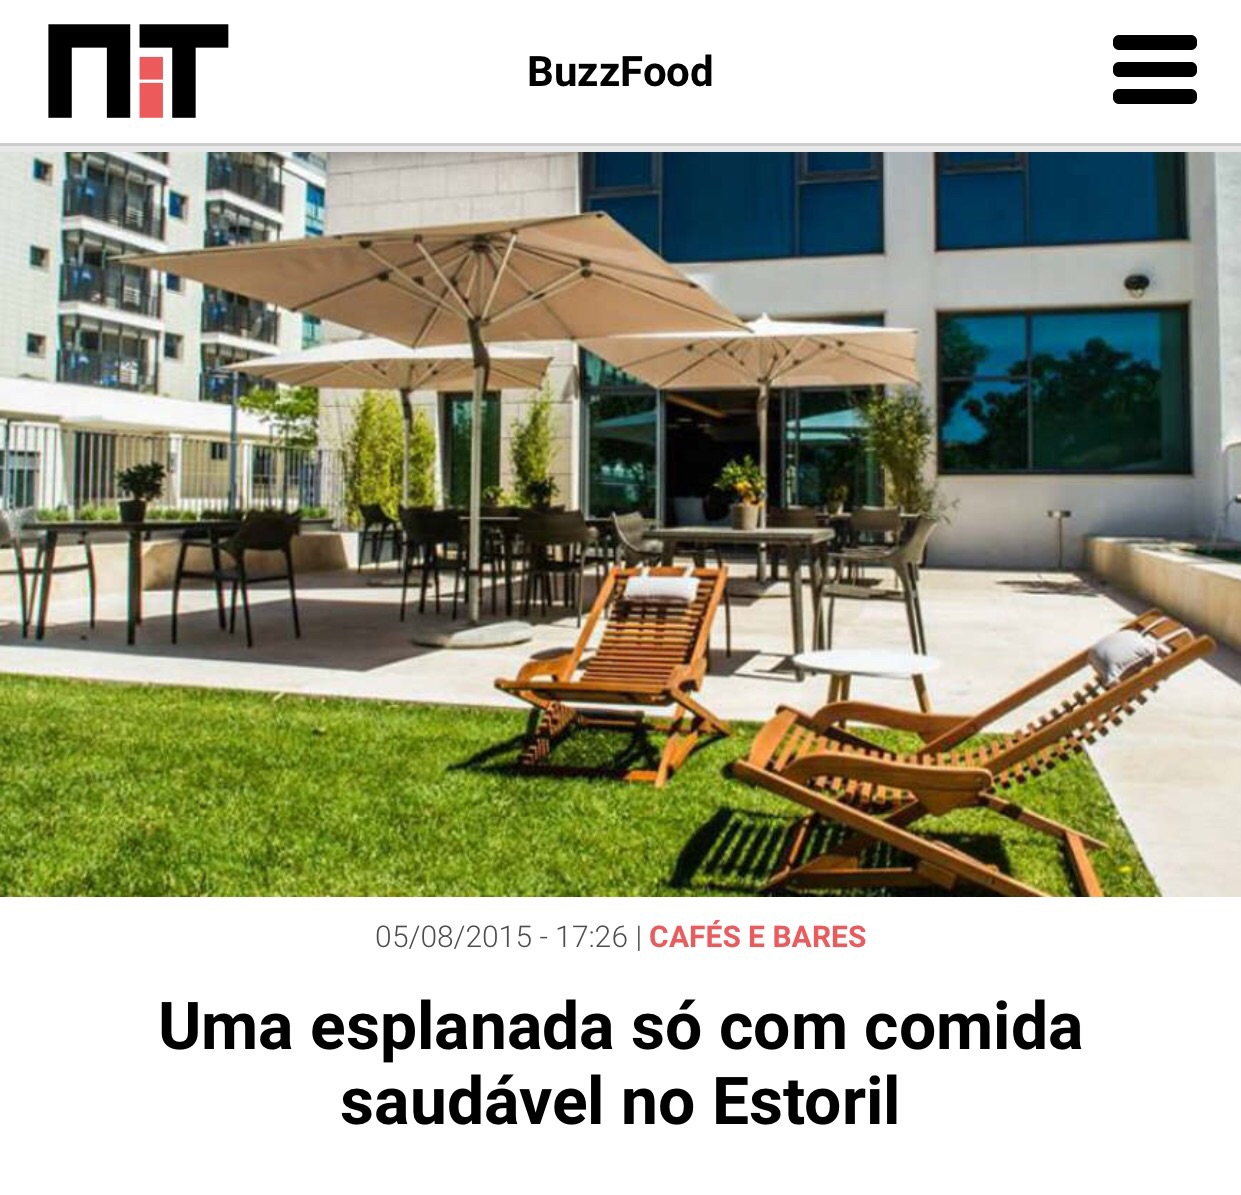 http://newintown.pt/article/08-05-2015-uma-esplanada-so-com-comida-saudavel-no-estoril